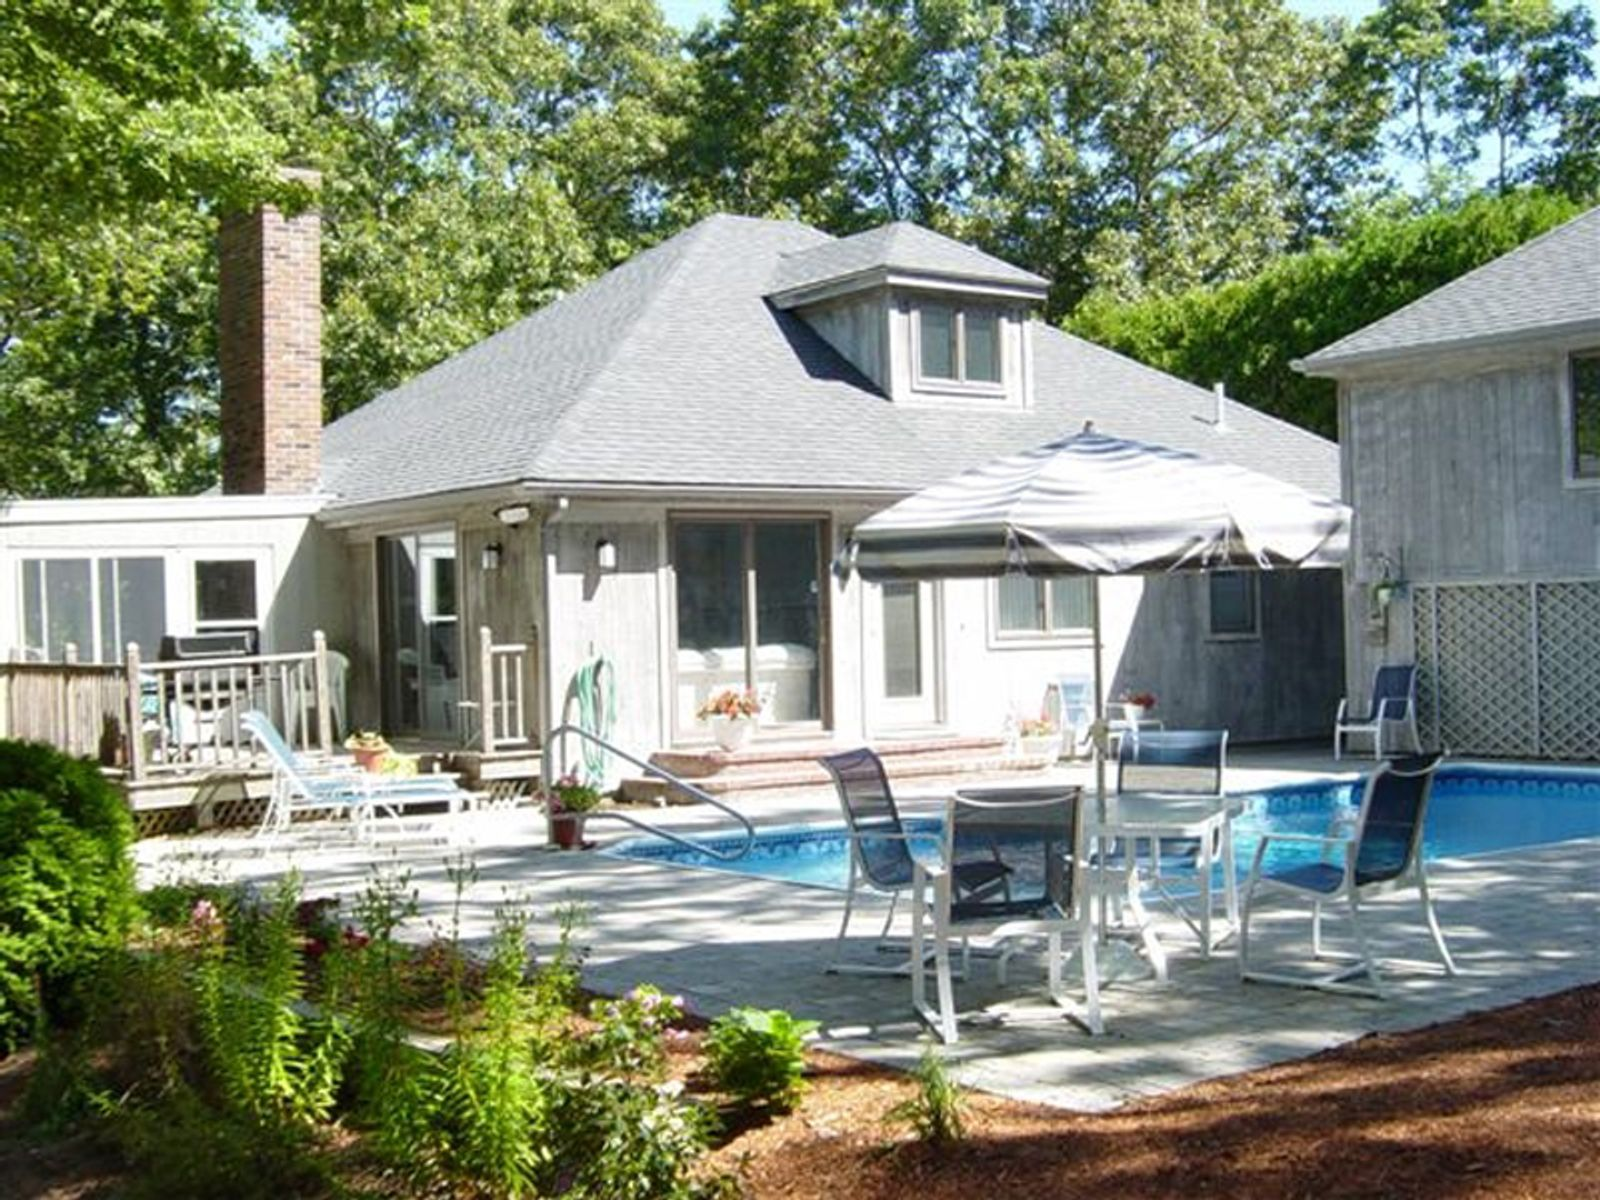 hyannis port hindu singles This single-family home is located at 151 a irving avenue, hyannis port, ma 151 a irving ave is in the 02647 zip code in hyannis port, ma 151 a irving ave has 5 beds, 4 baths, approximately 4,220 square feet, and was built in 1955.